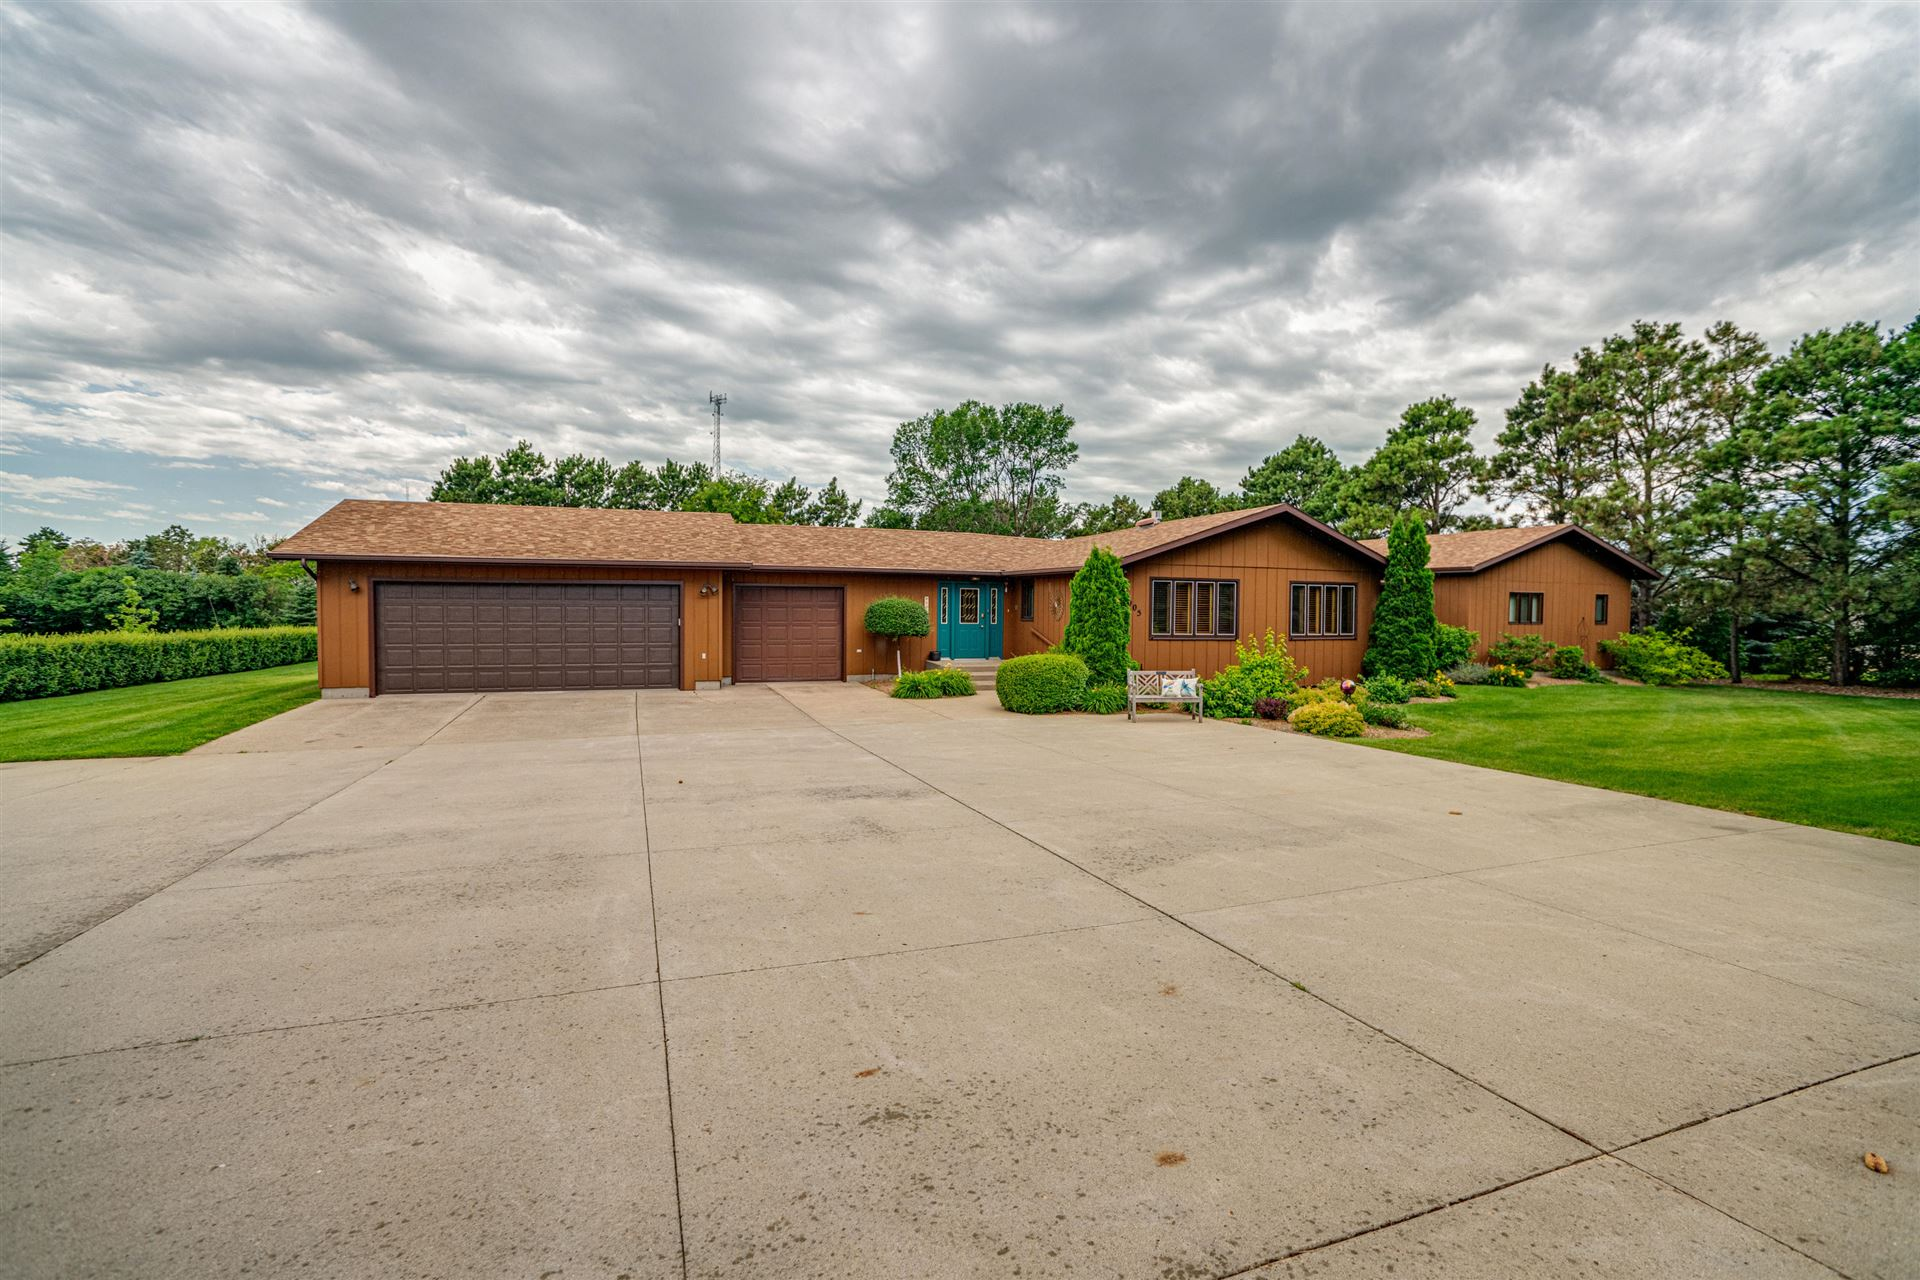 4005 Old Red Trail NW, Mandan, ND 58554 - #: 407581